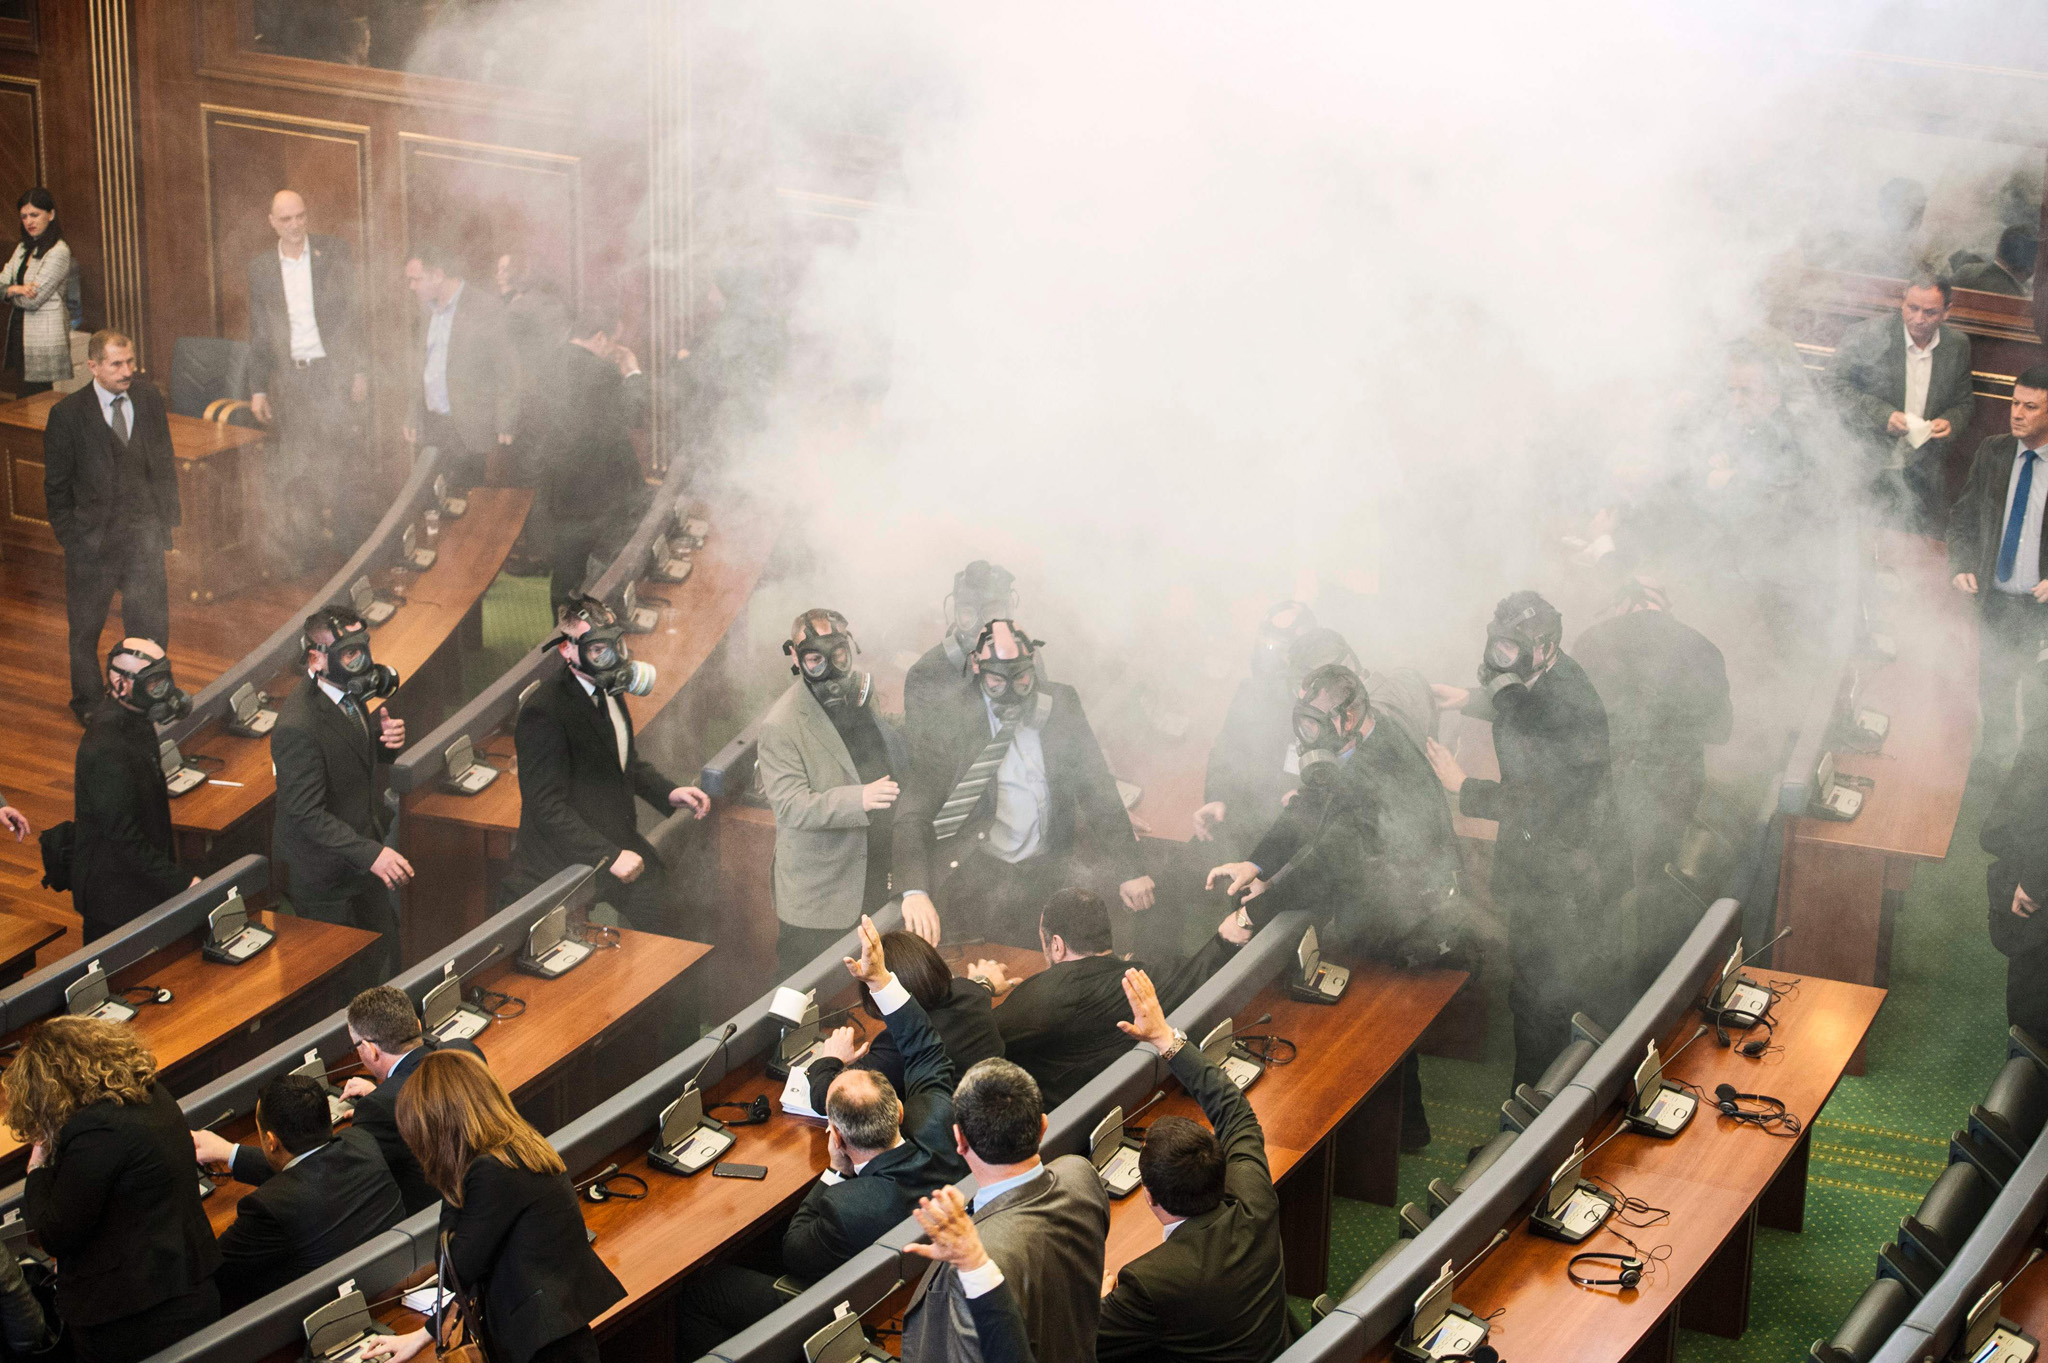 Kosovo police officers weeraing  gas masks inspect the parliament, after tear gas was launched by opposition lawmakers, disrupting the first parliamentary session of the year